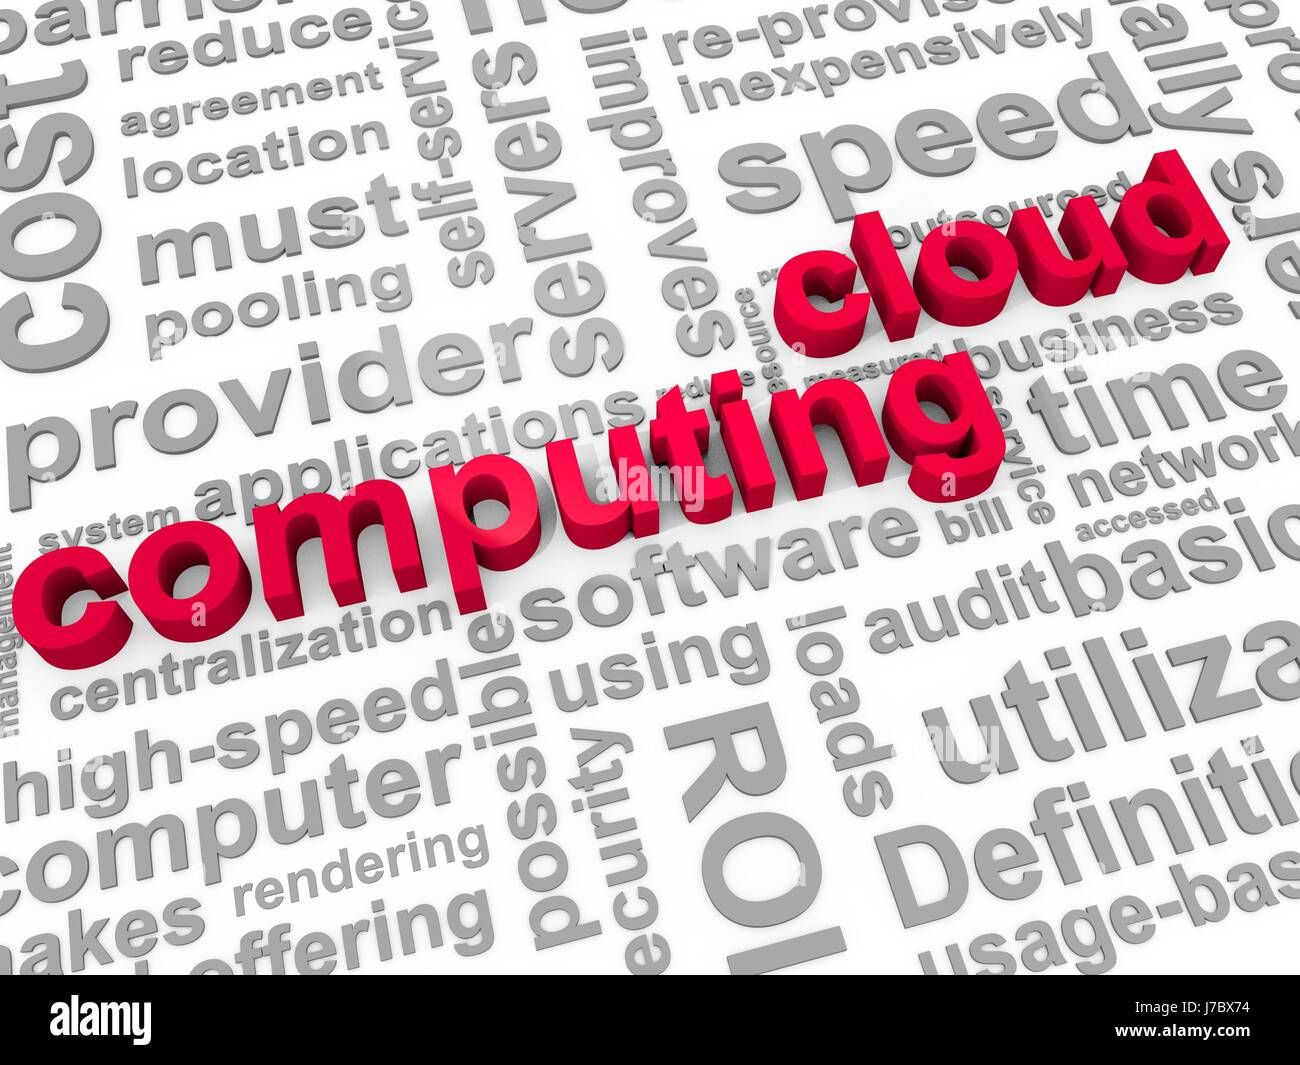 cloud computing software computers computer network cloud computing provider Stock Photo